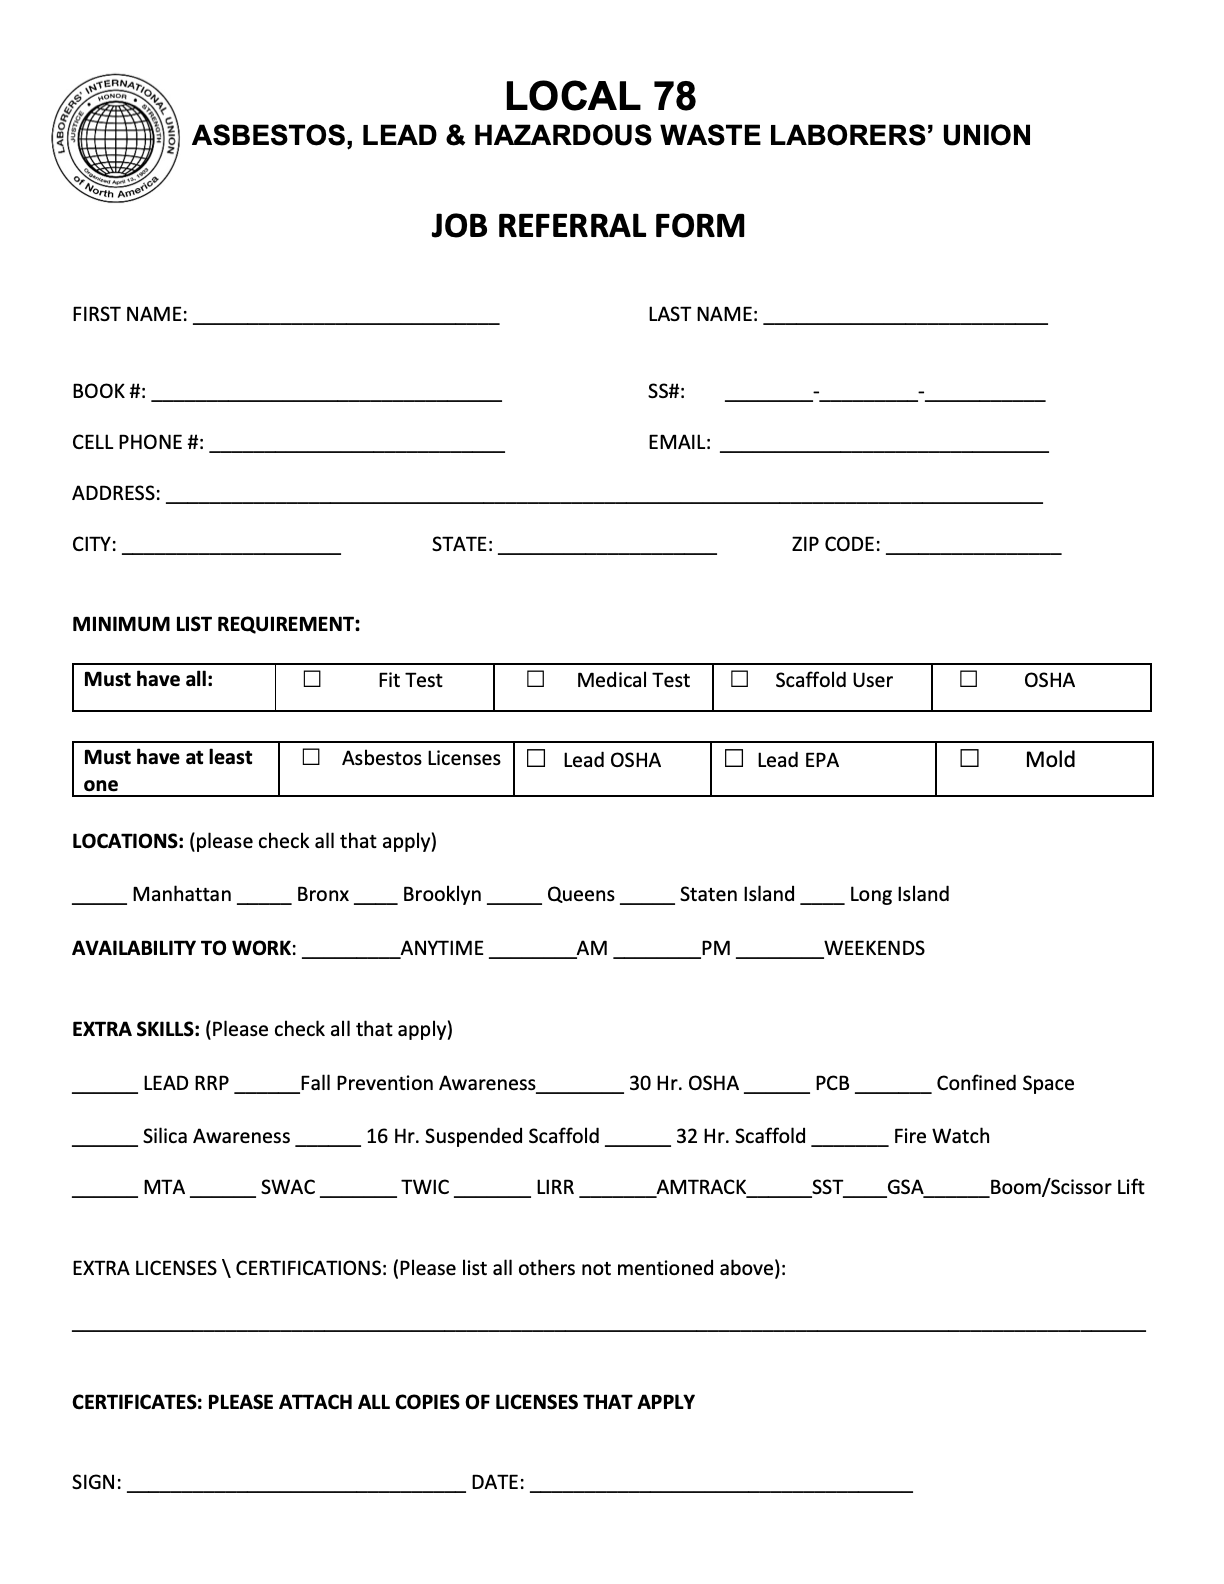 Local 78 Hiring Hall Rules